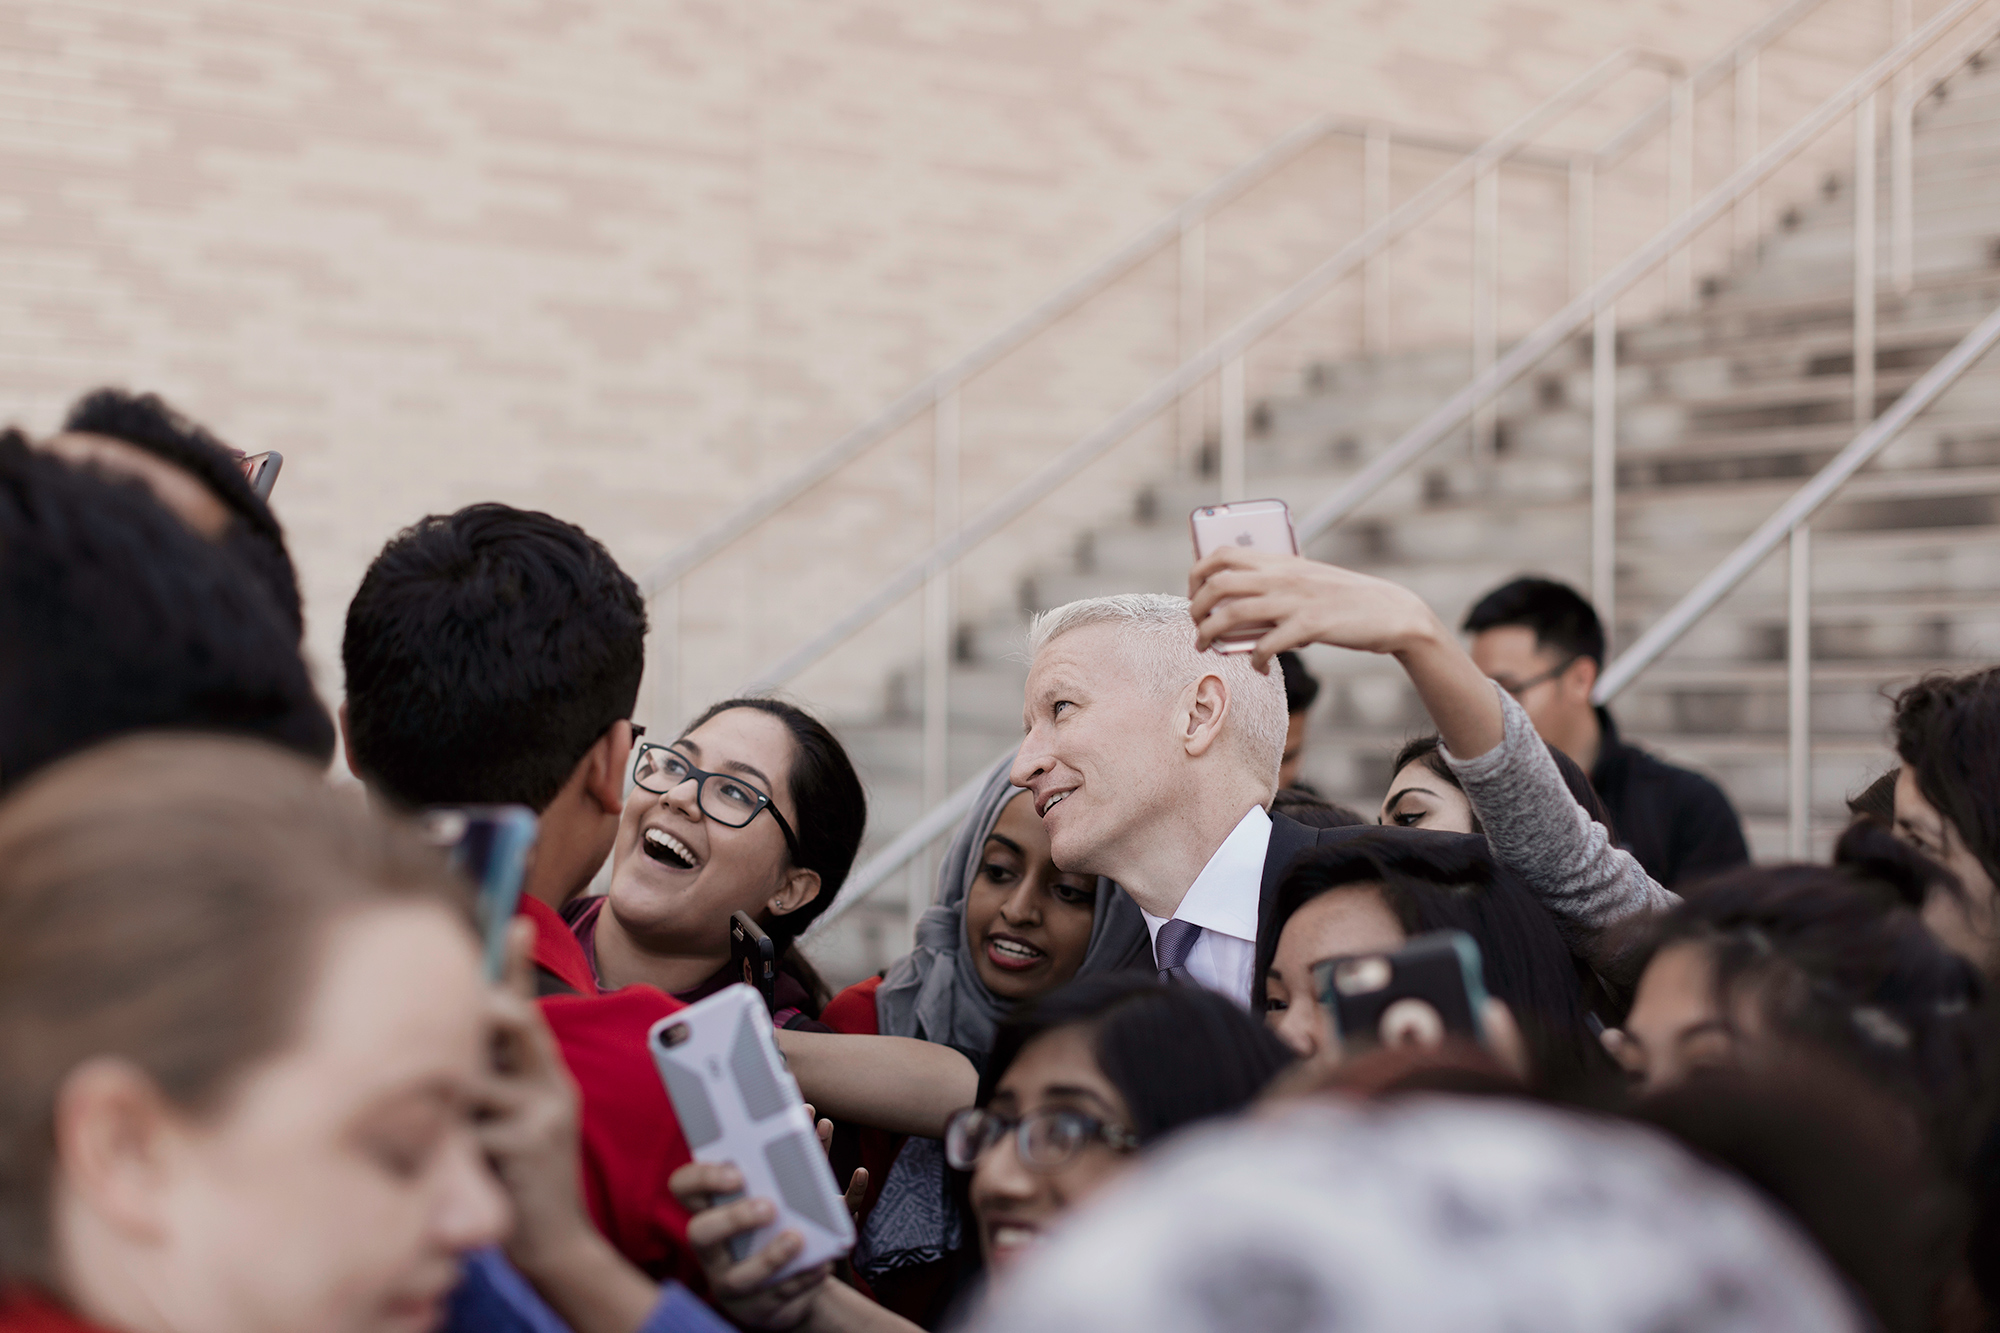 Anderson Cooper, CNN anchor and host of AC360, greets the students of the University of Houston, prior to the 2016 Presidential Debate at UH in Houston, Texas photographed by Houston photographer, Todd Spoth.